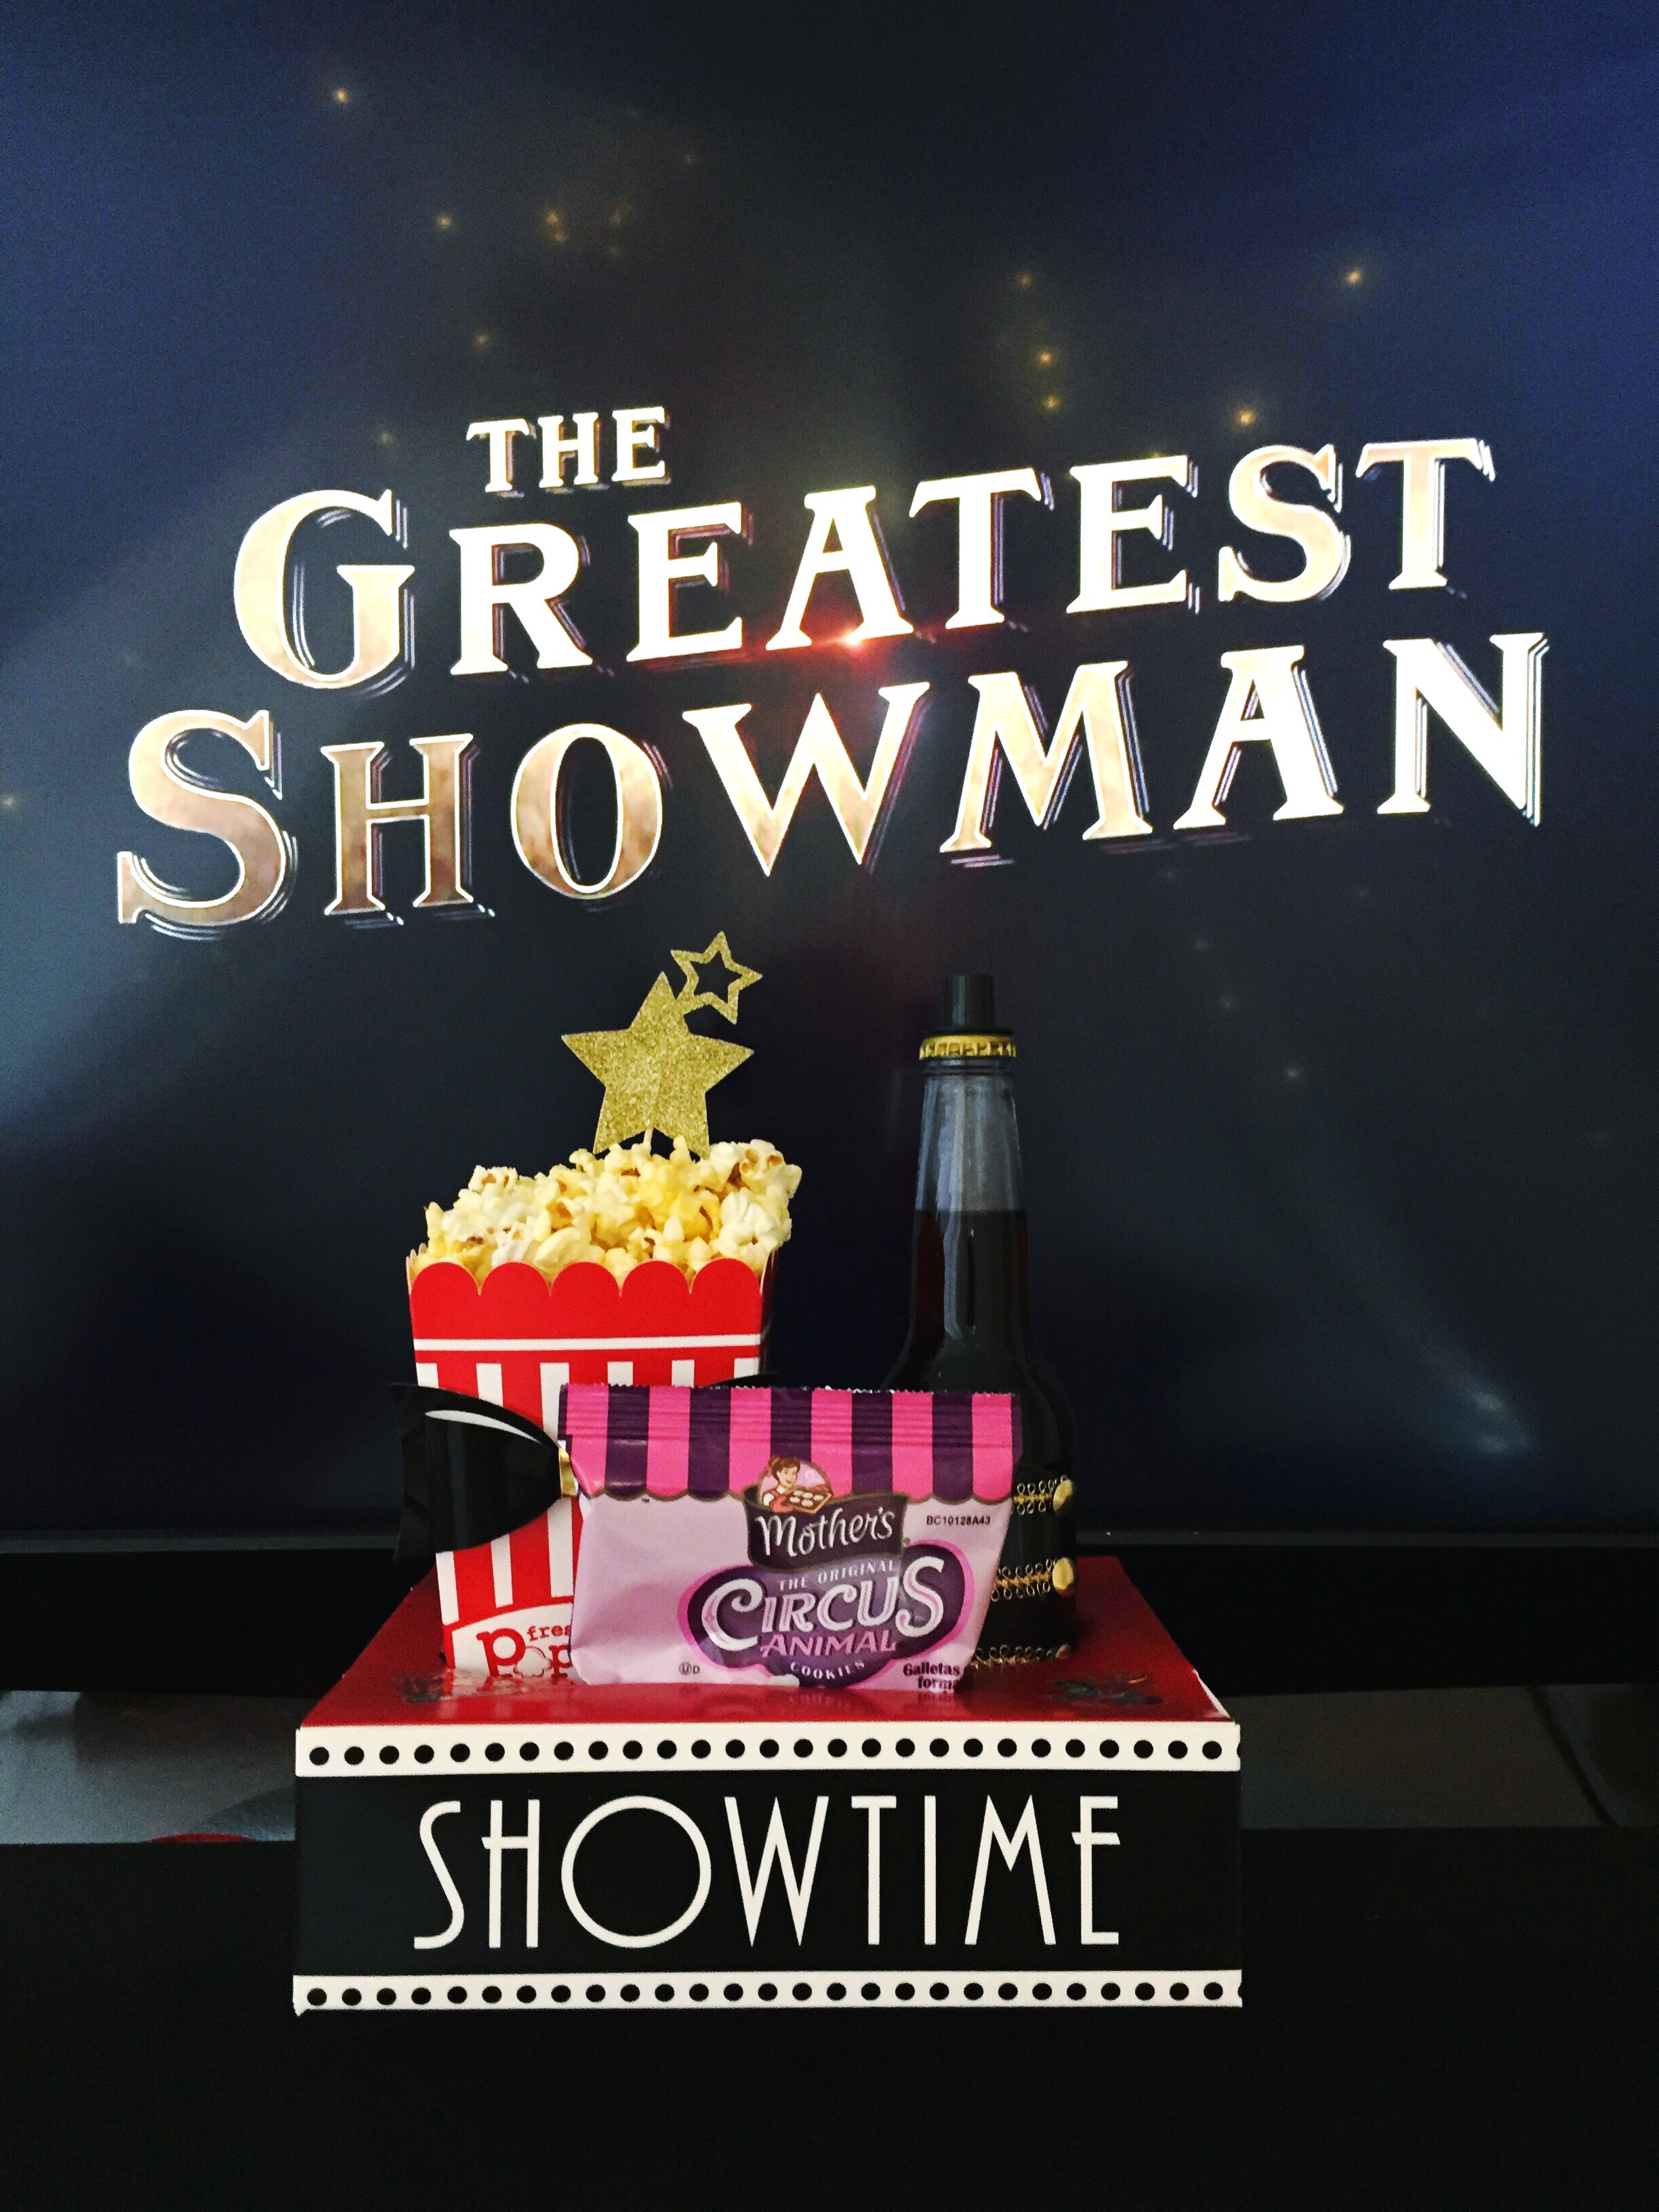 The Greatest Showman Movie Party_Food Concessions Tray.JPG